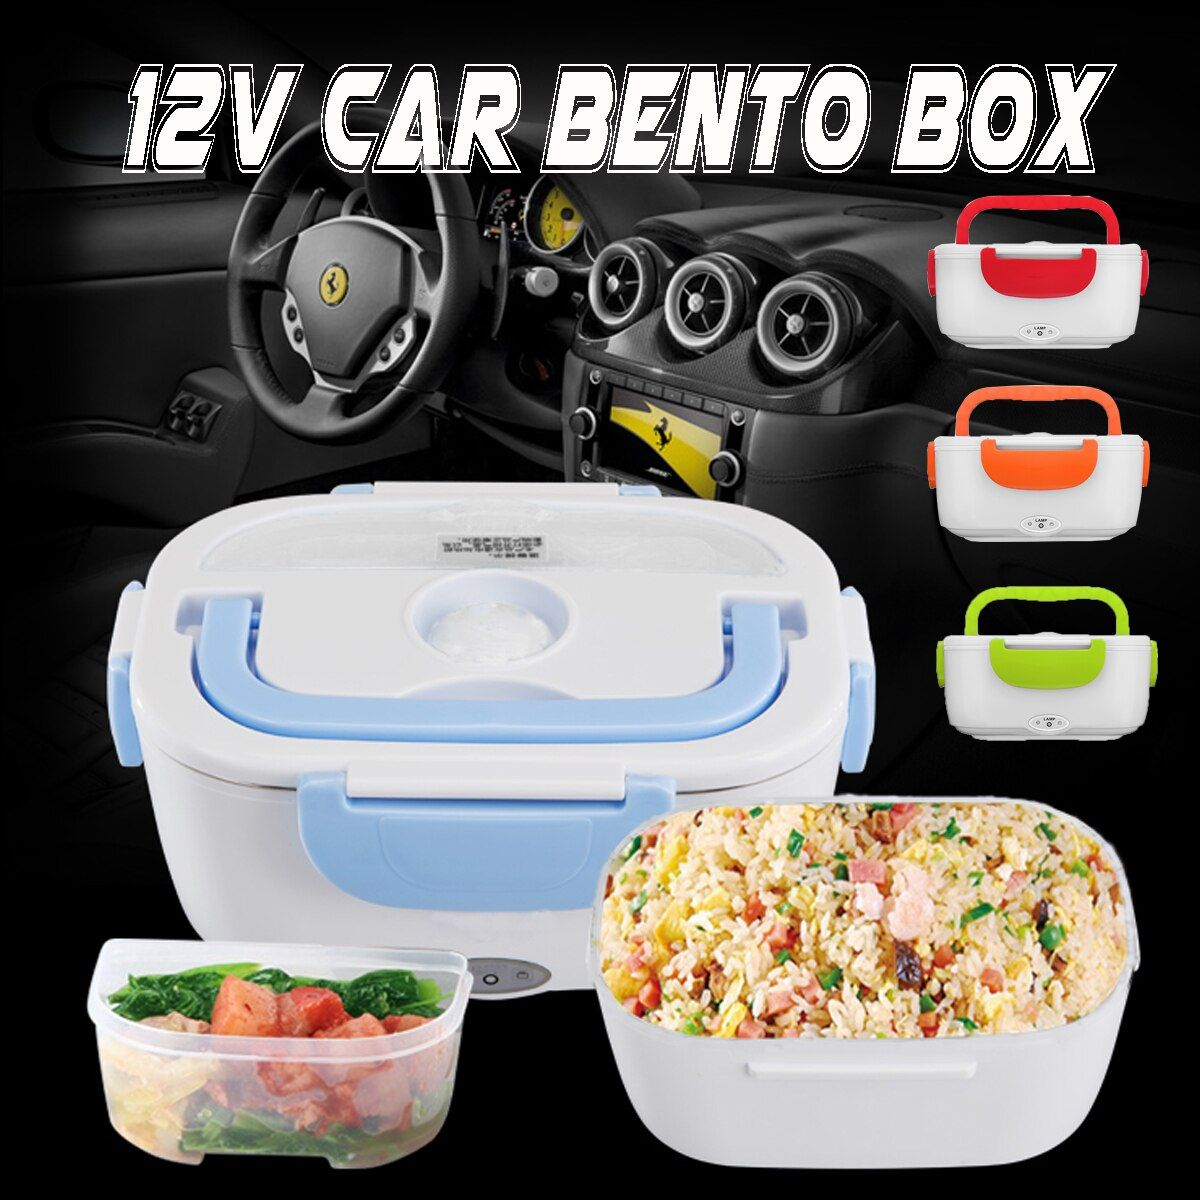 12-24V Portable Electric Heated Lunch Box Car Hot Food Warmer Storage Bento Box for Travel School Office Home Dinnerware 2018